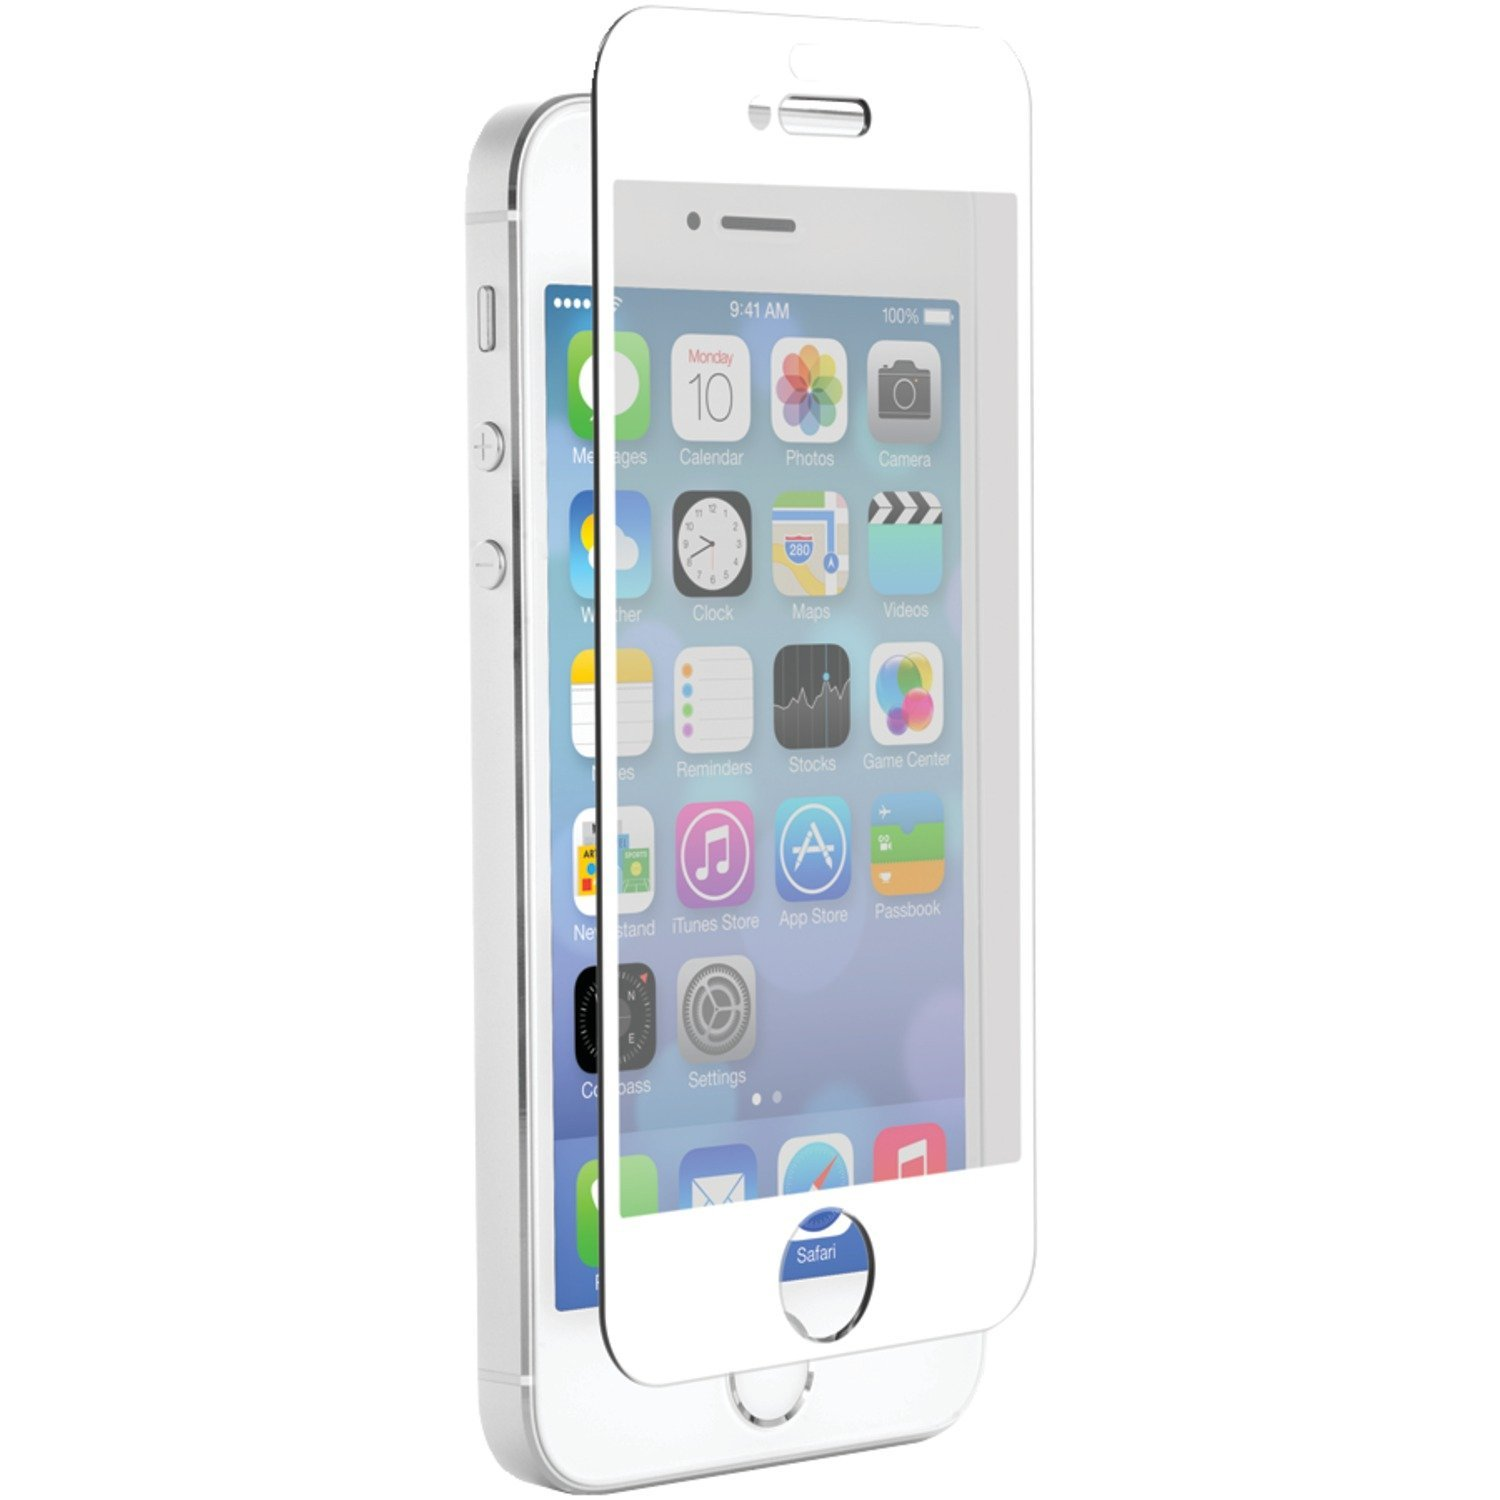 timeless design 9c6b4 efd6a Znitro Glass Screen Protector For Apple iPhone 5/5s/5c - White Bezel